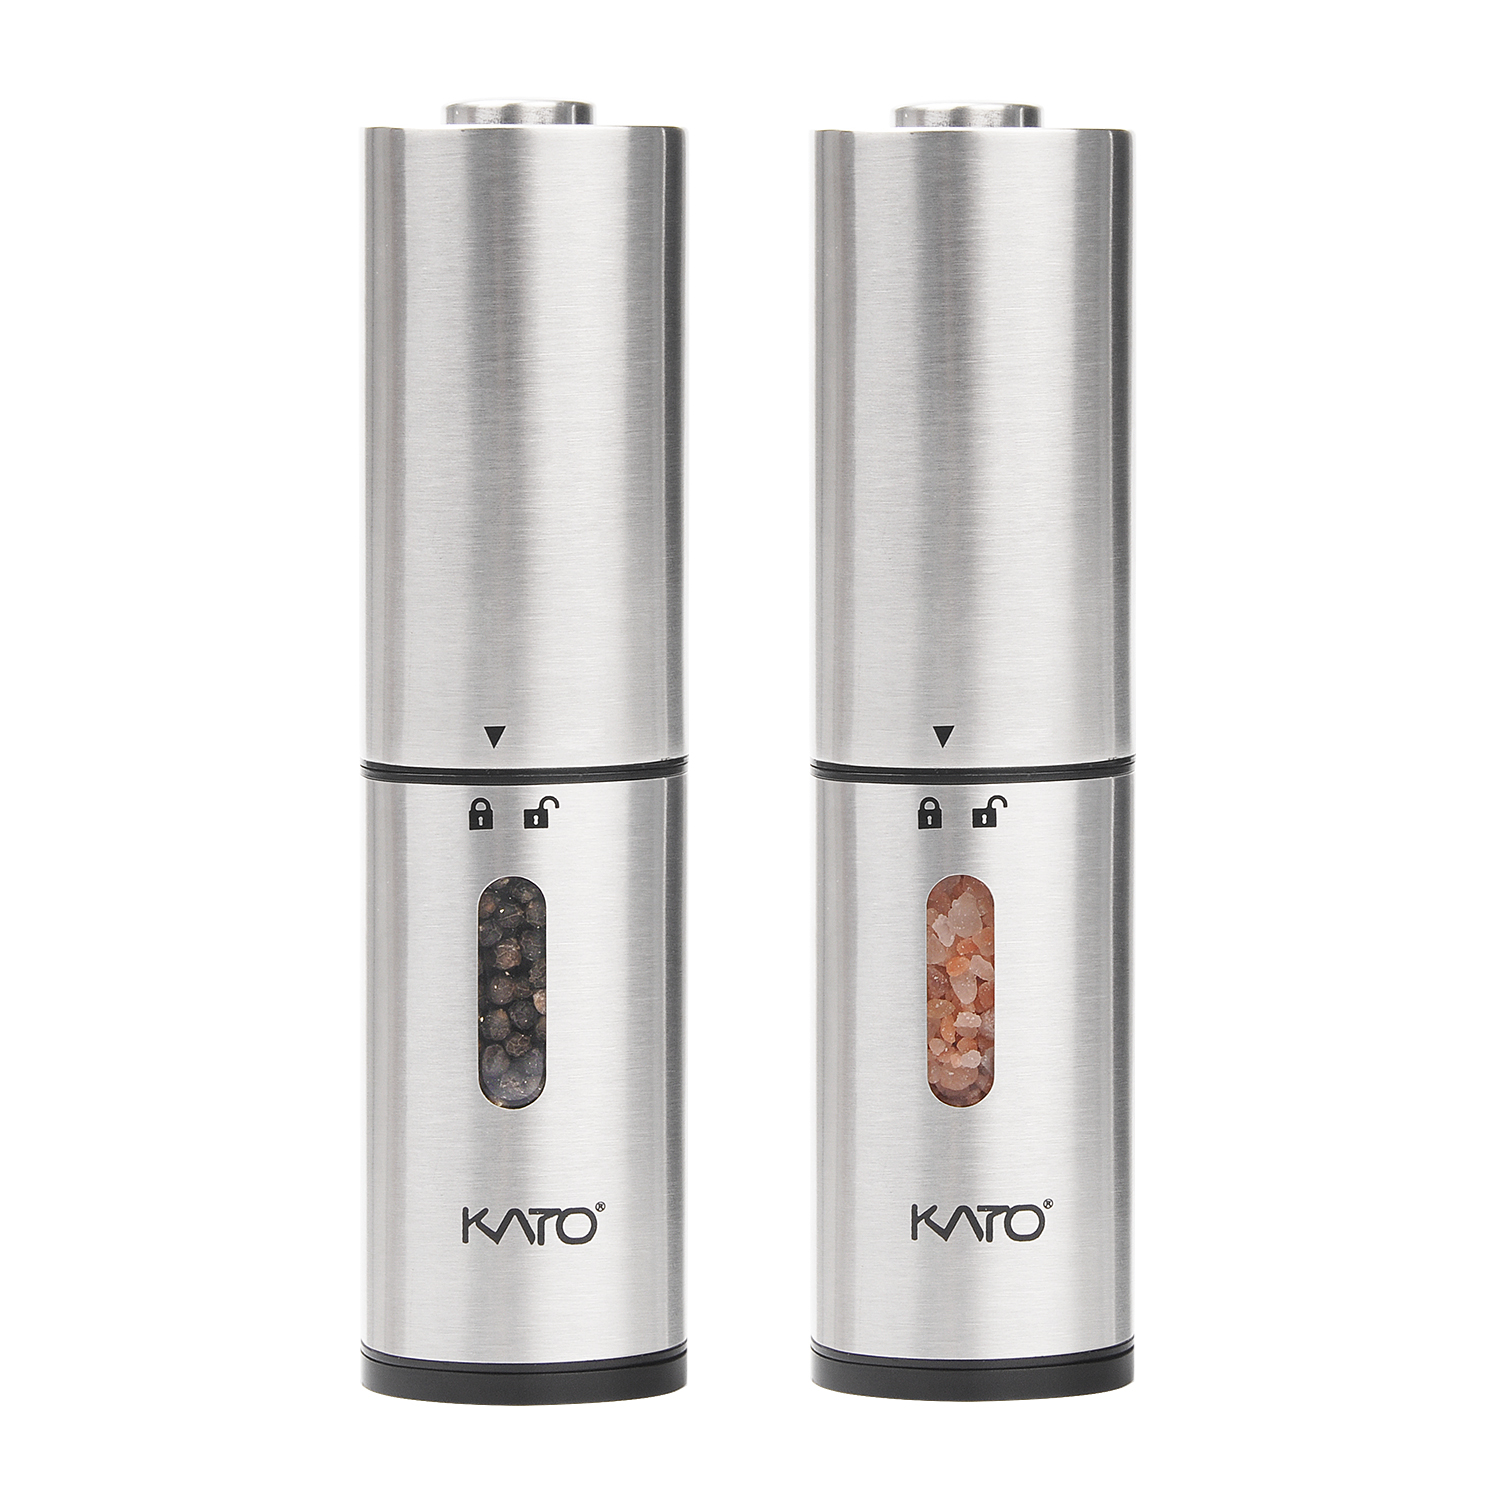 Kato Electric Salt and Pepper Grinder Set - Battery Operated, Stainless Steel, Automatic Pepper Shaker Mill with Led Light and Adjustable Coarseness for Flavor & Seasoning, Pack of 2